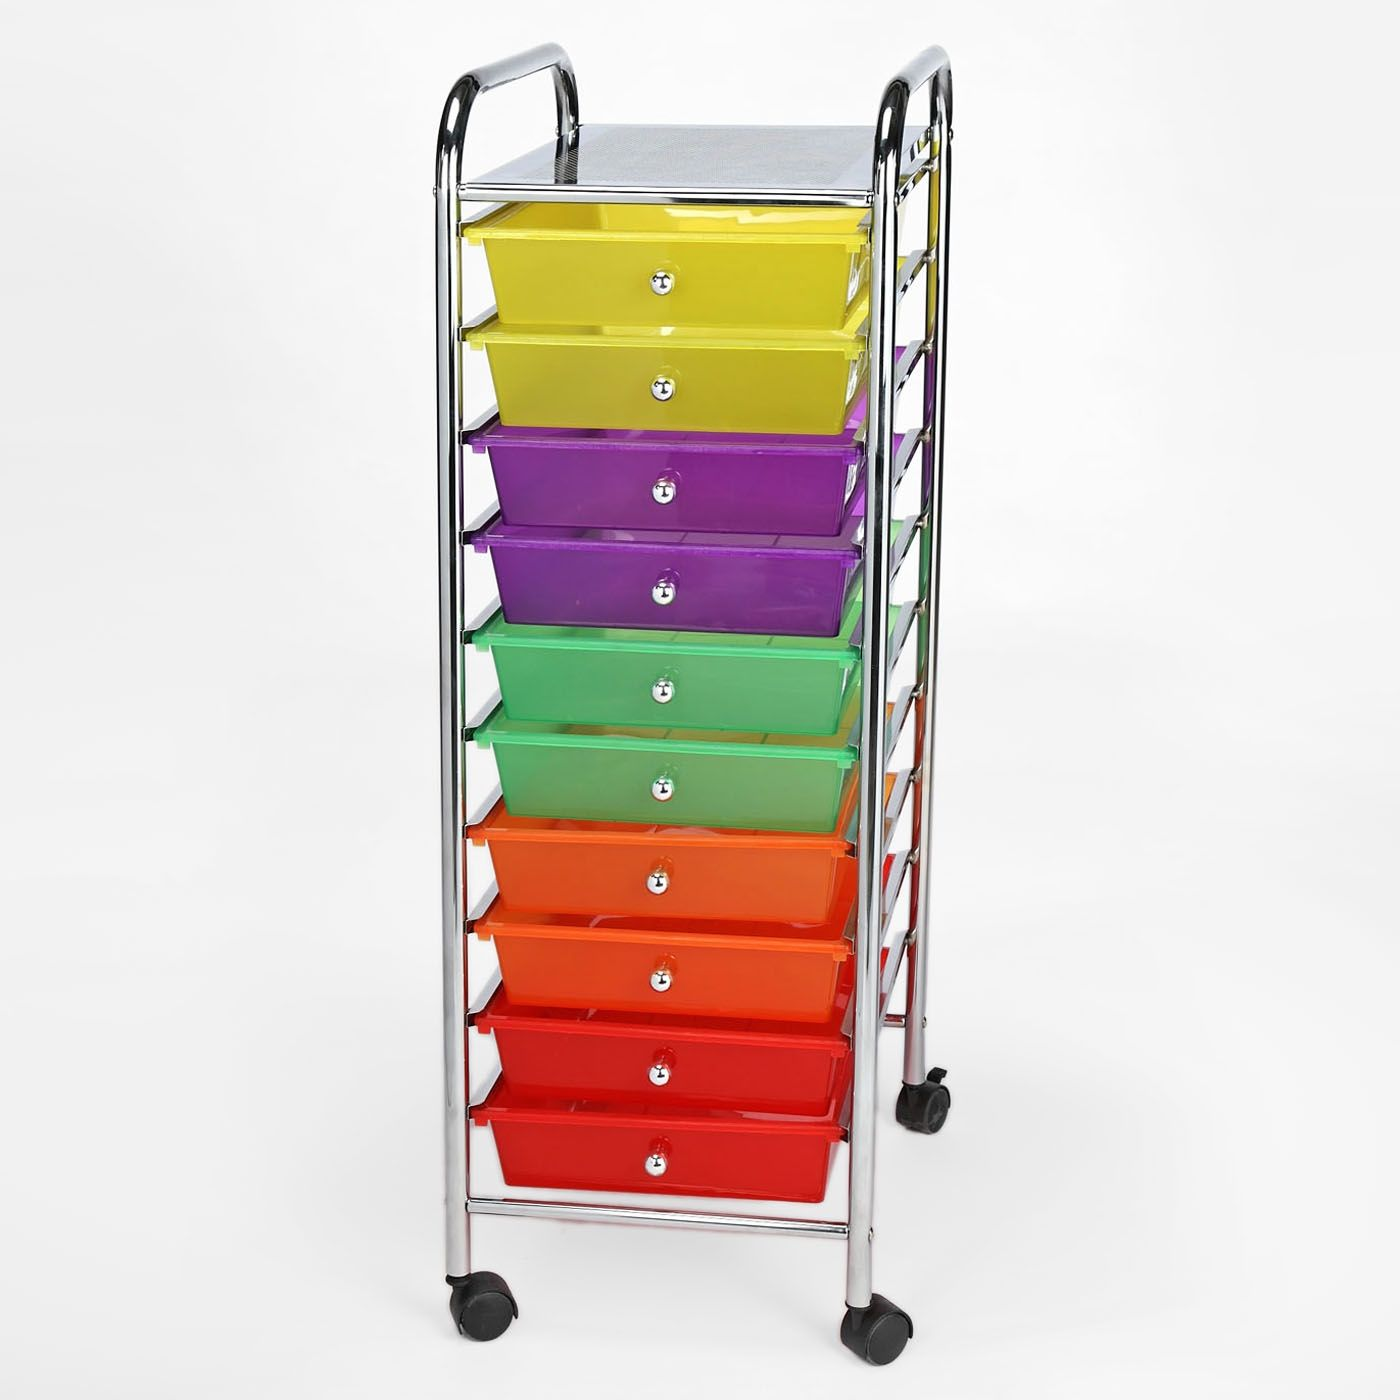 Use this to organize centers, or two weeks worth of daily lesson plans and materials,  etc. $24.99